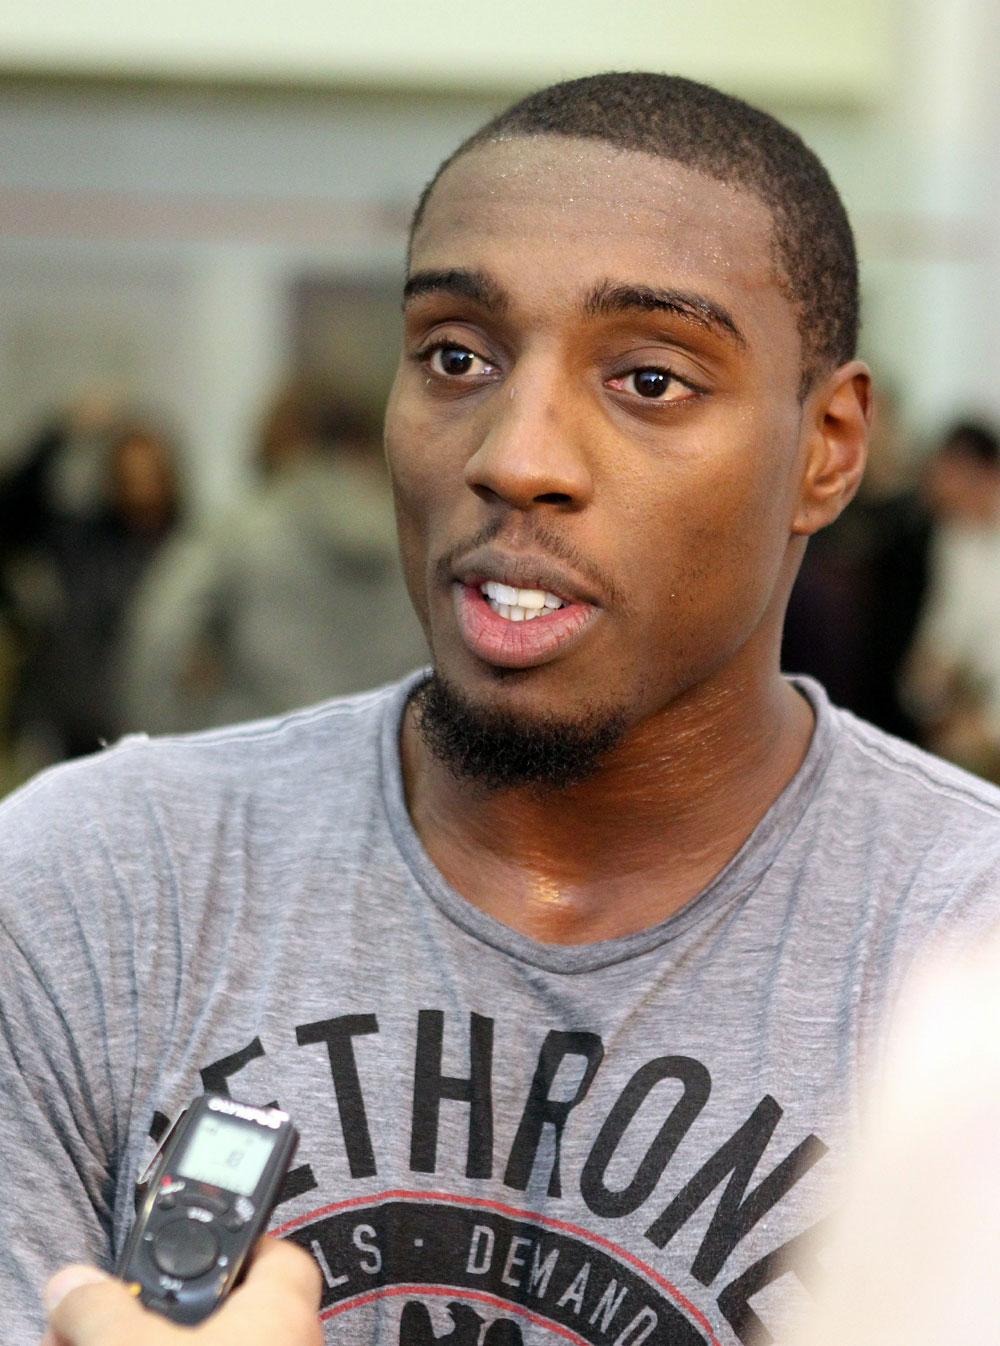 Phil Davis answers questions from the media at the UFC 123 open workouts at the Detroit Athletic Club in Detroit, Michigan on November 18, 2010  (Photo by Josh Hedges/Zuffa LLC/Zuffa LLC via Getty Images)